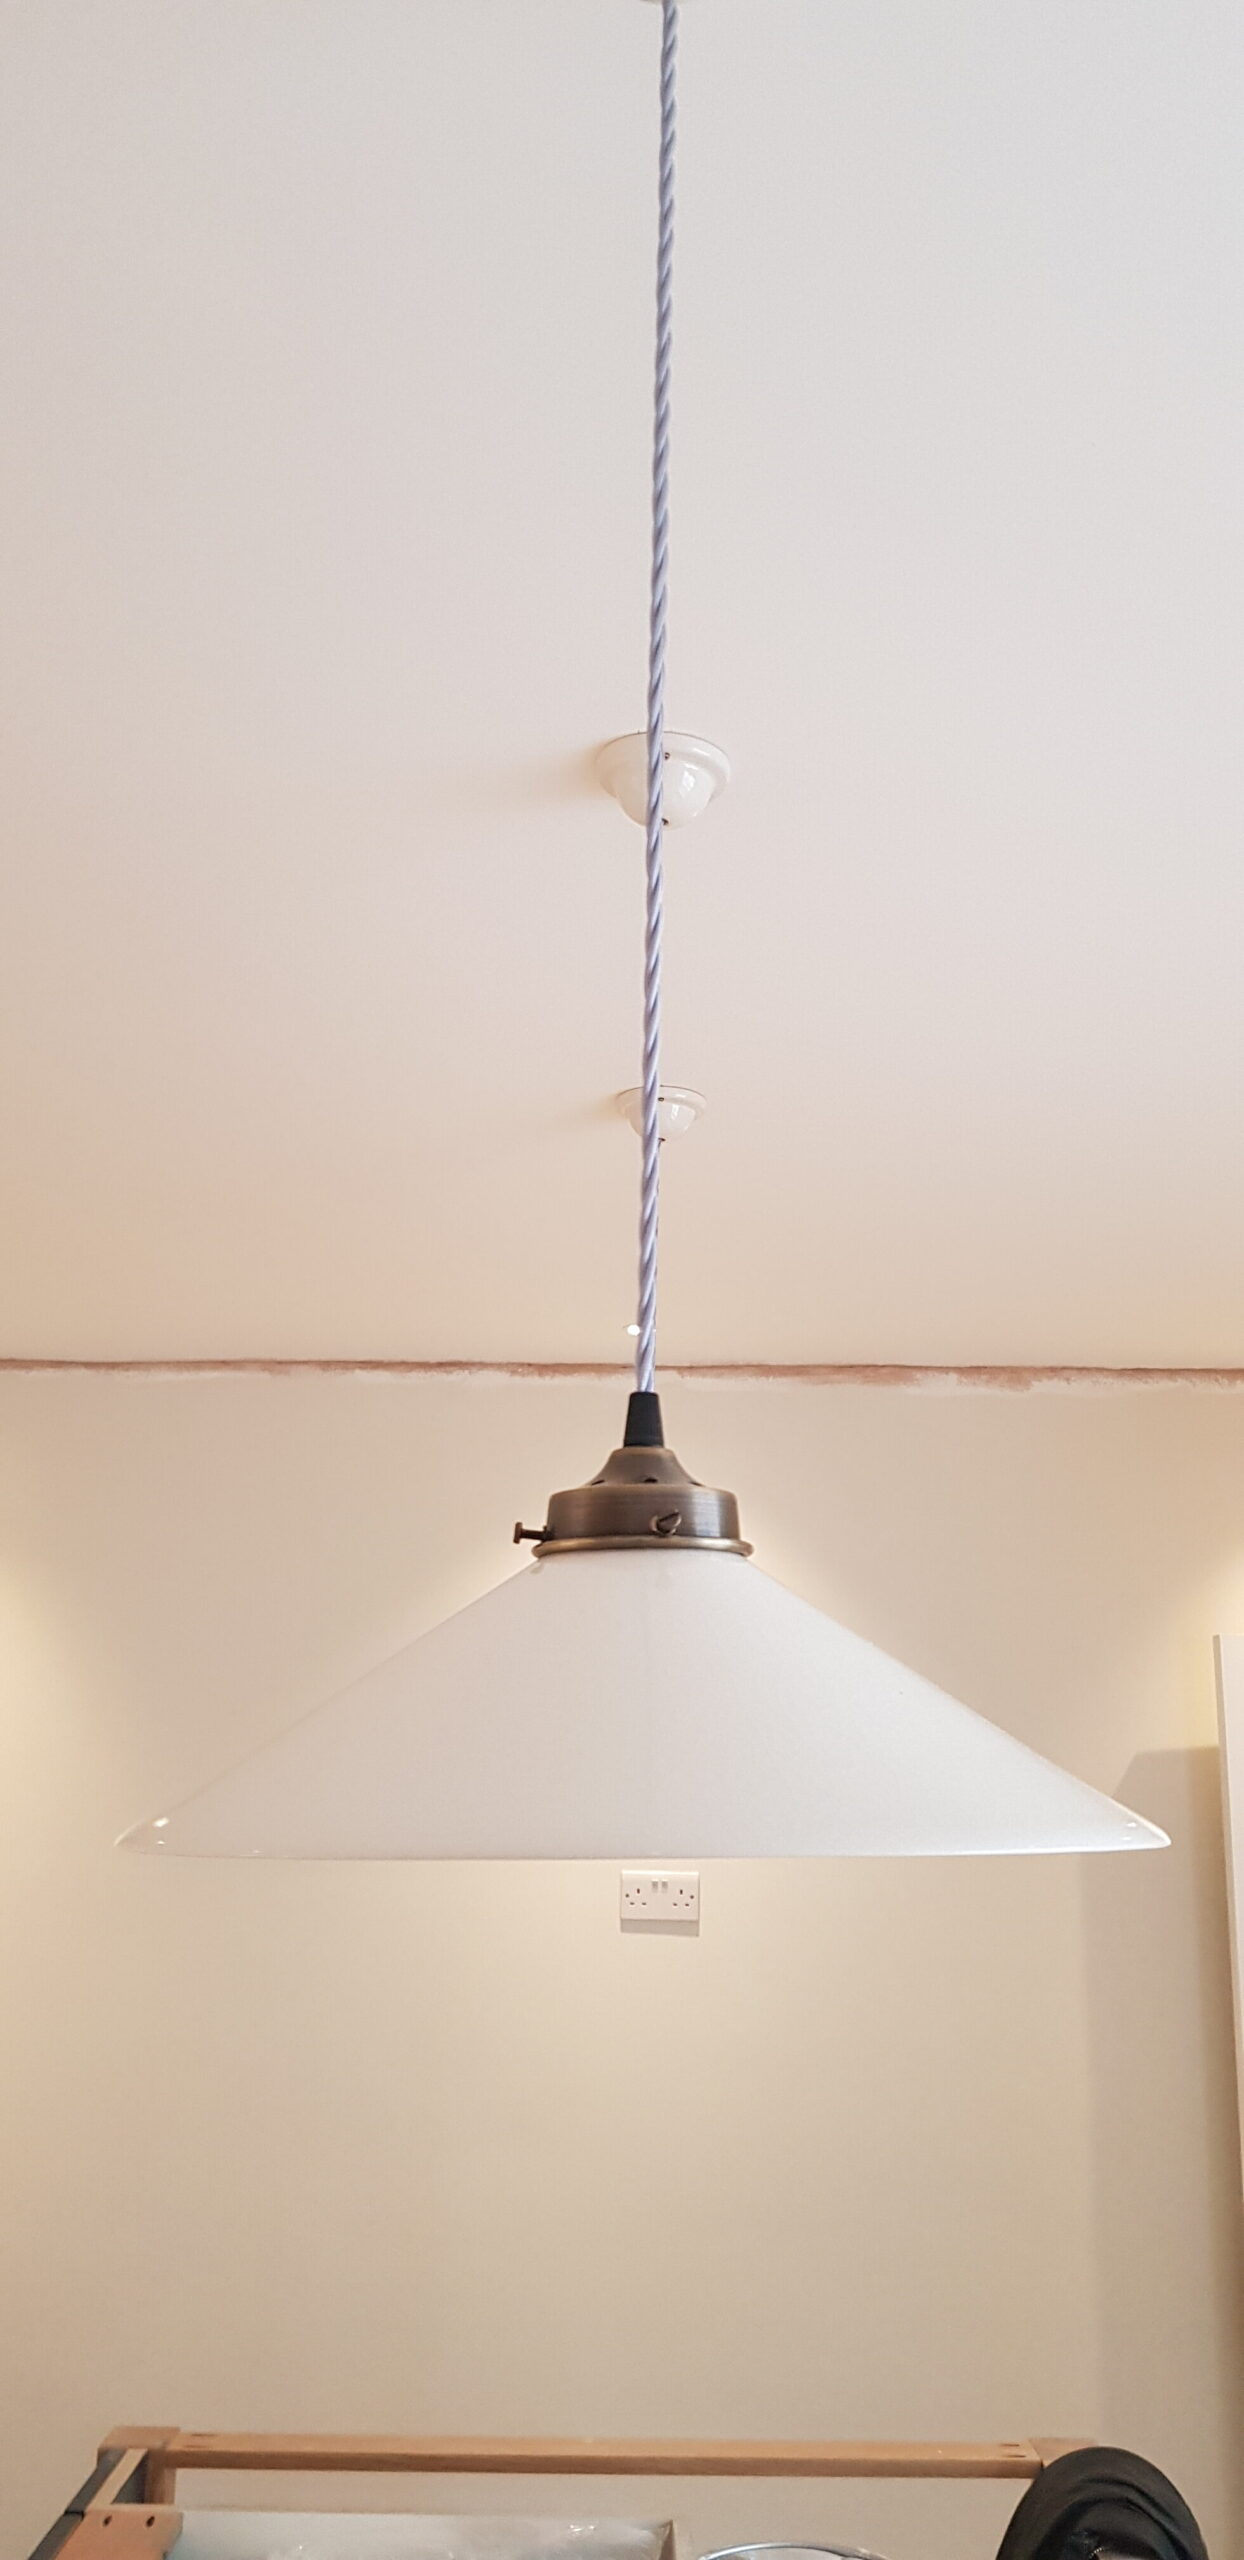 Fitting new light lamp in the refurbished kitchen